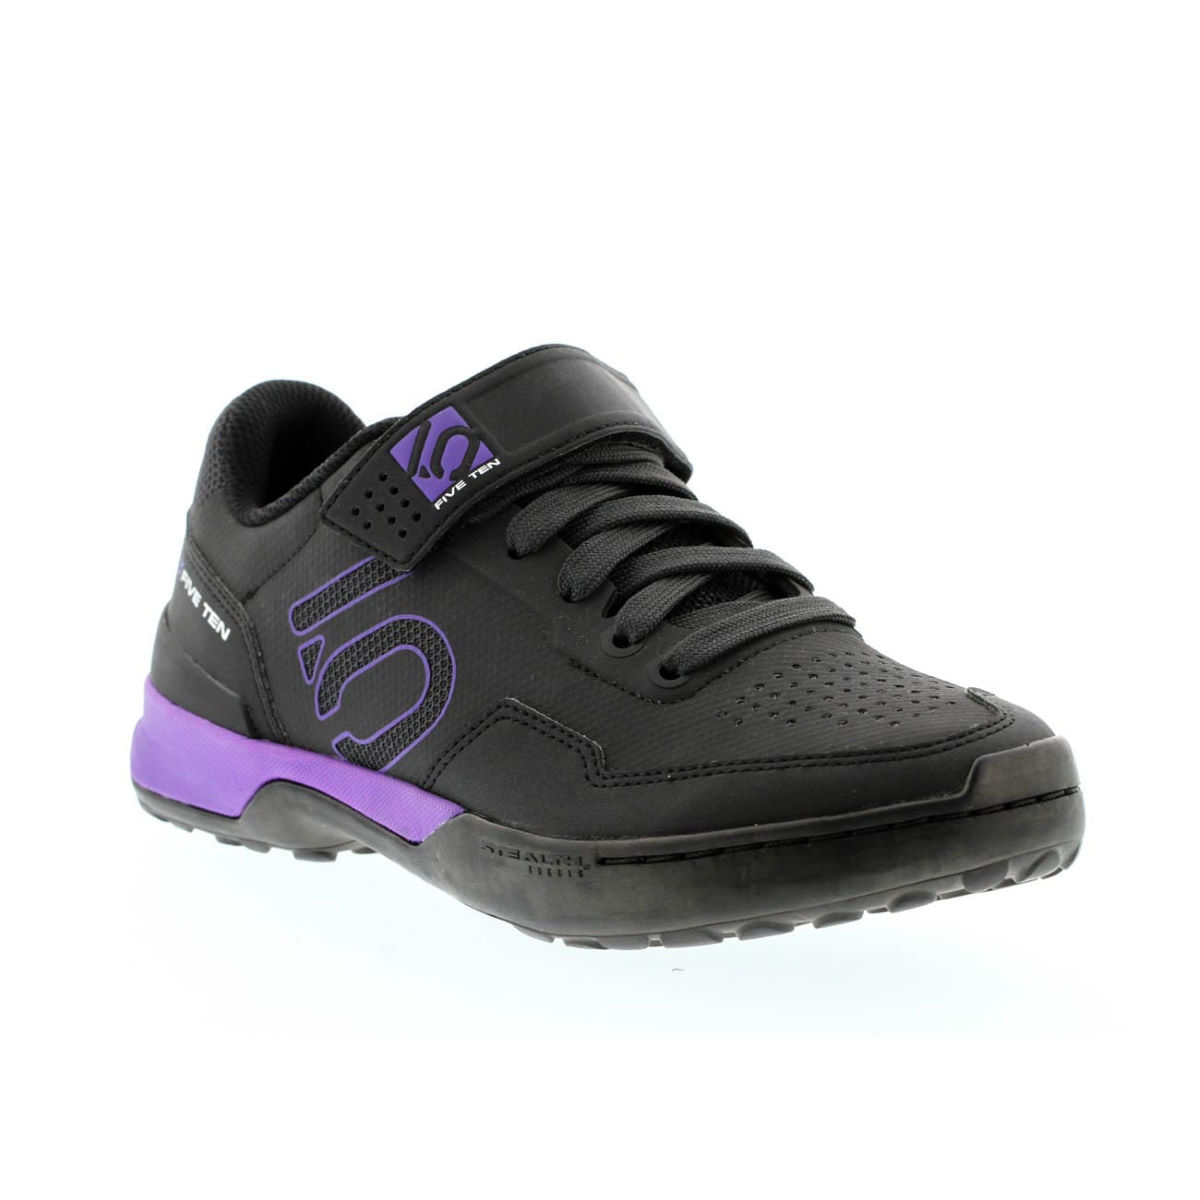 Chaussures VTT Femme Five Ten Kestrel Lace SPD - EU 38 Black/Purple